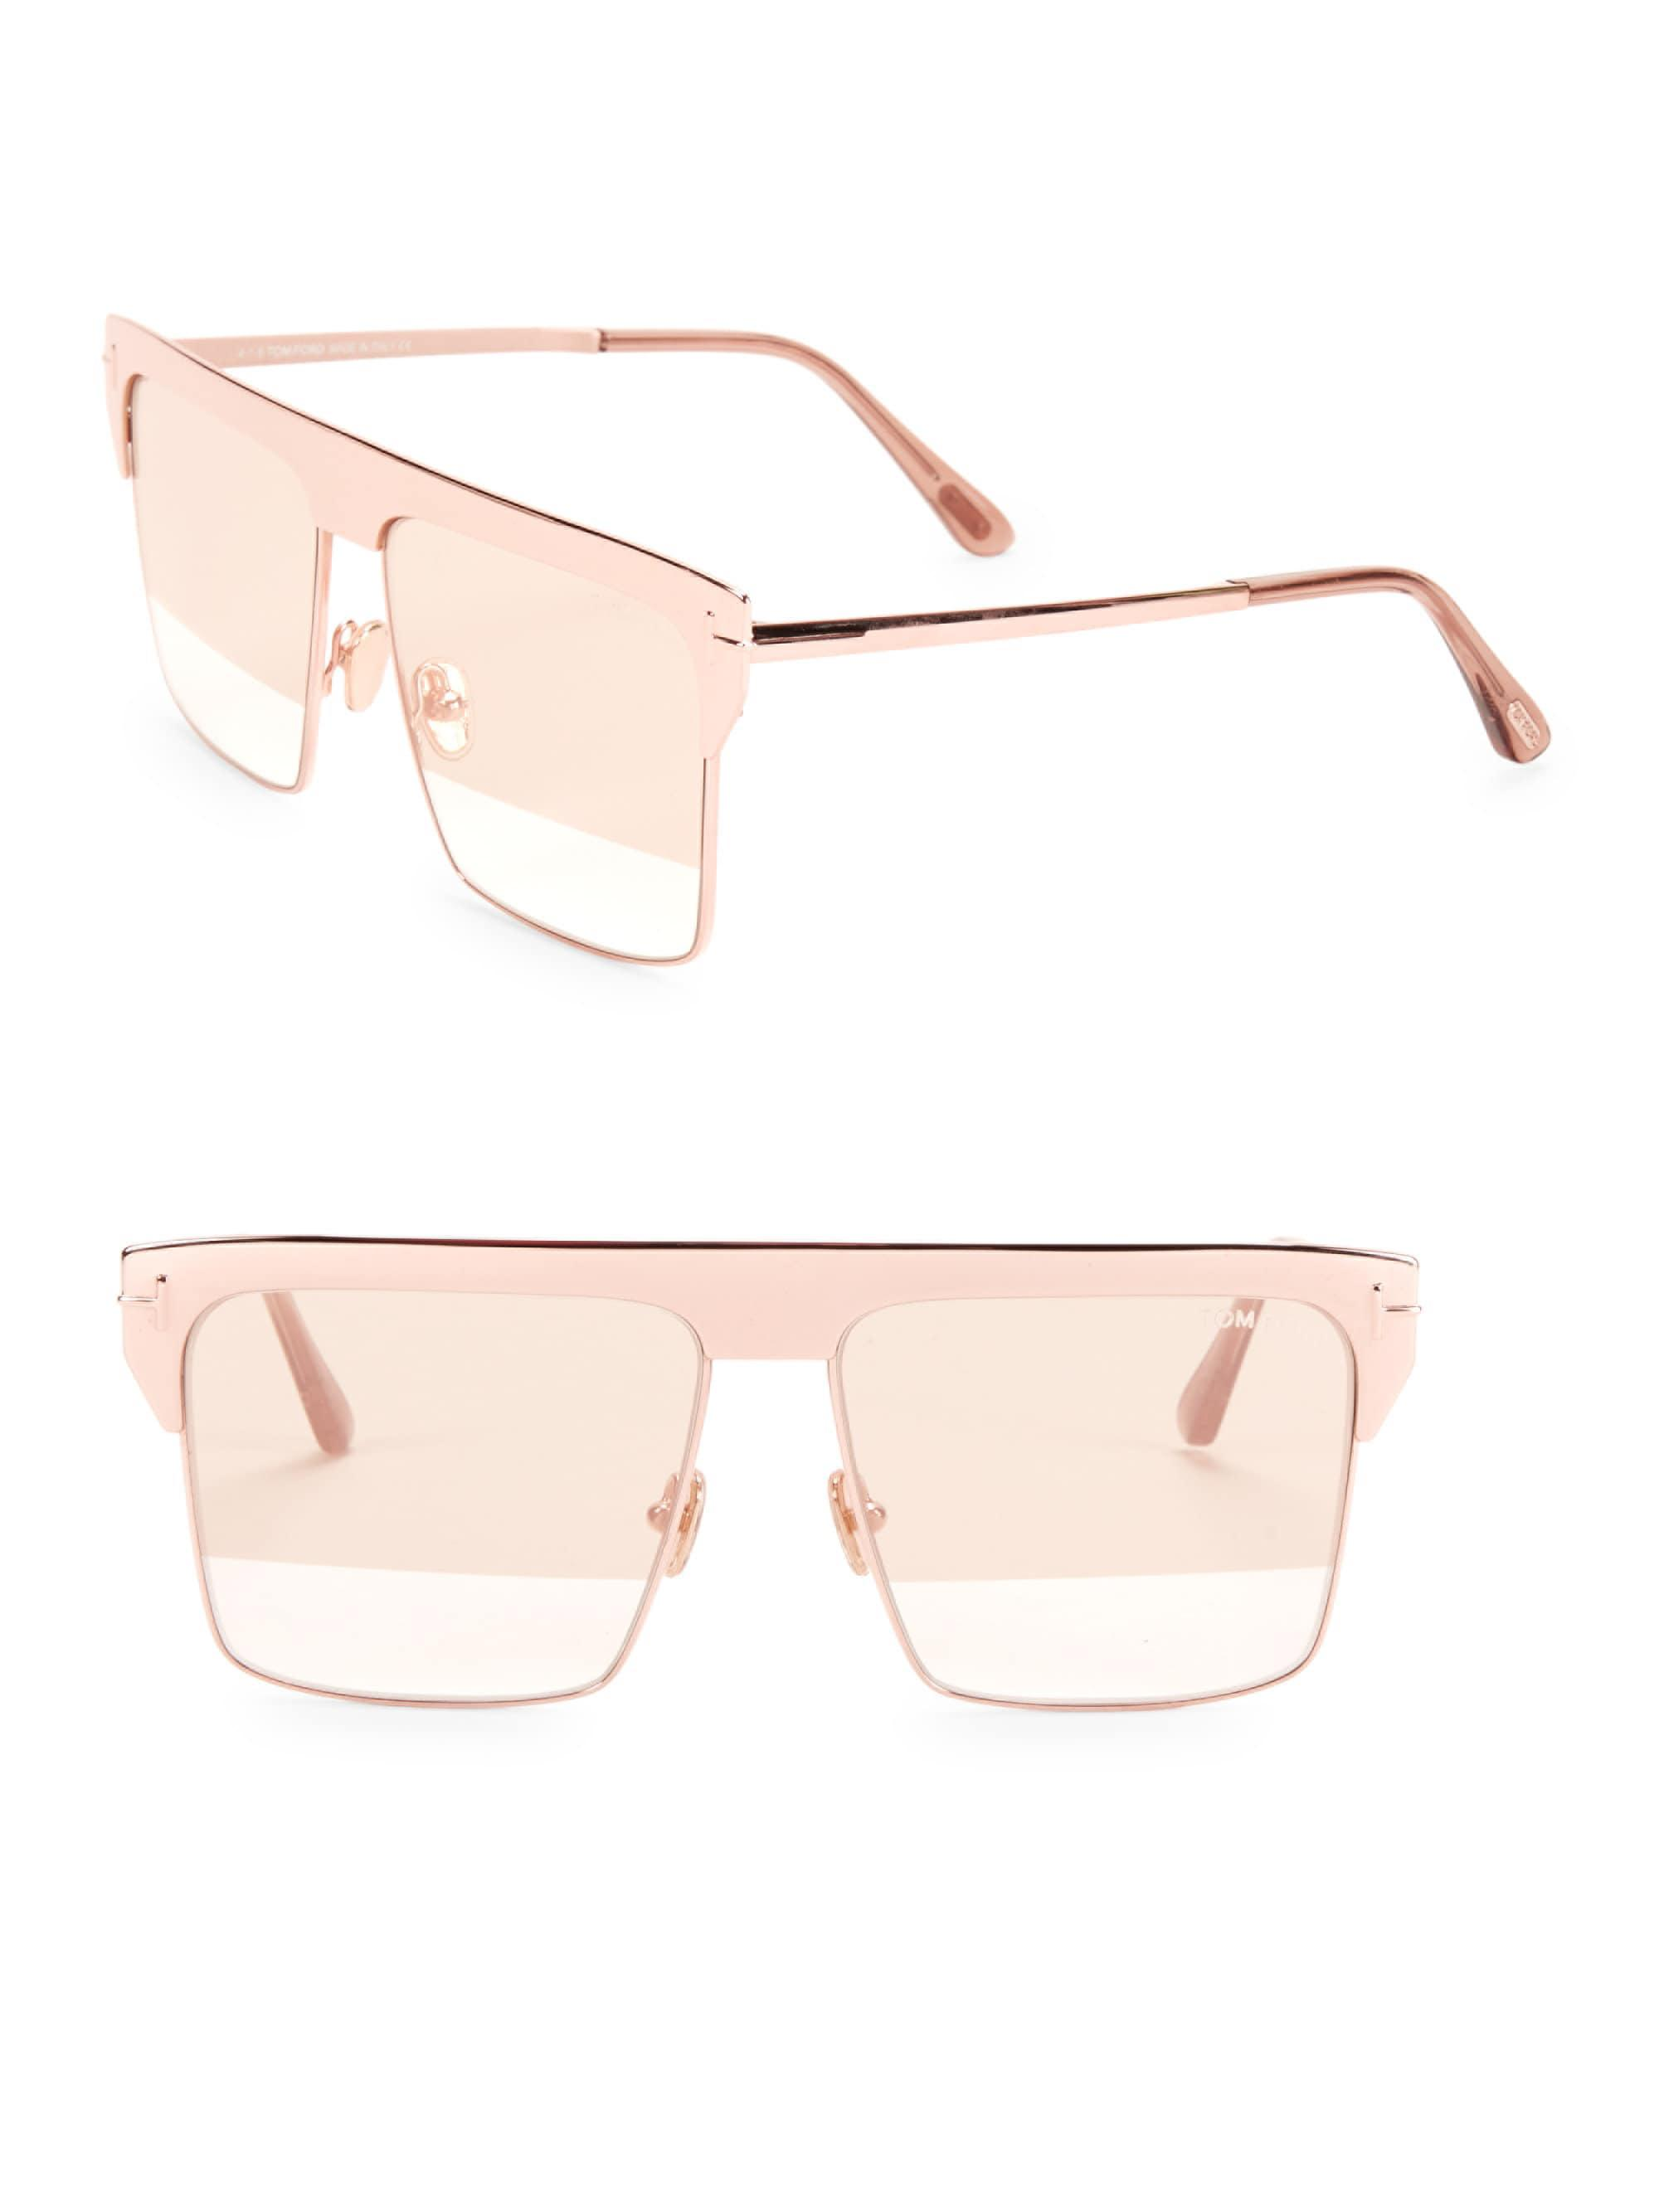 24d8cb04f8e Tom Ford West 59mm Square Rose Goldplated Sunglasses - Lyst